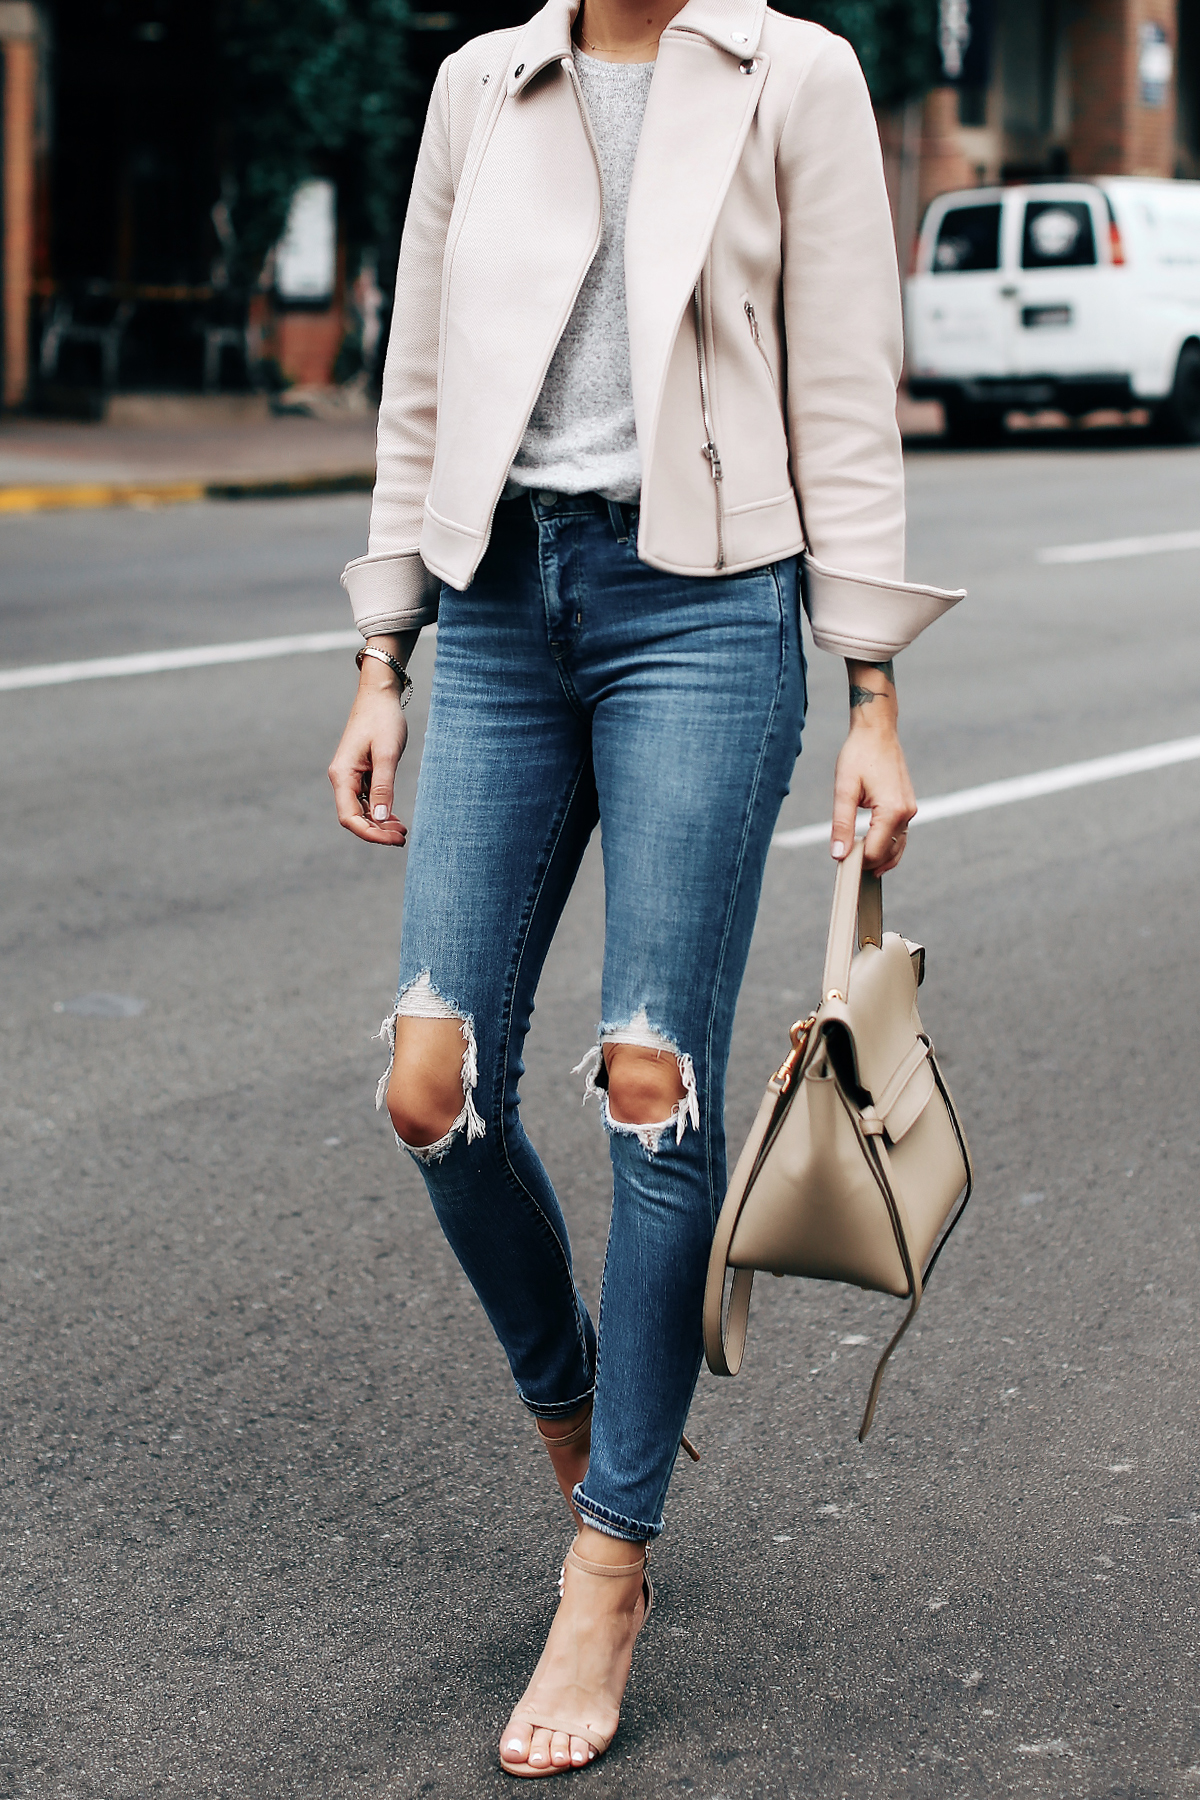 Woman Wearing Ann Taylor Blush Moto Jacket Grey Top Levis 721 Ripped Jeans Nude Ankle Strap Heels Celine Mini Belt Bag Fashion Jackson San Diego Fashion Blogger Street Style